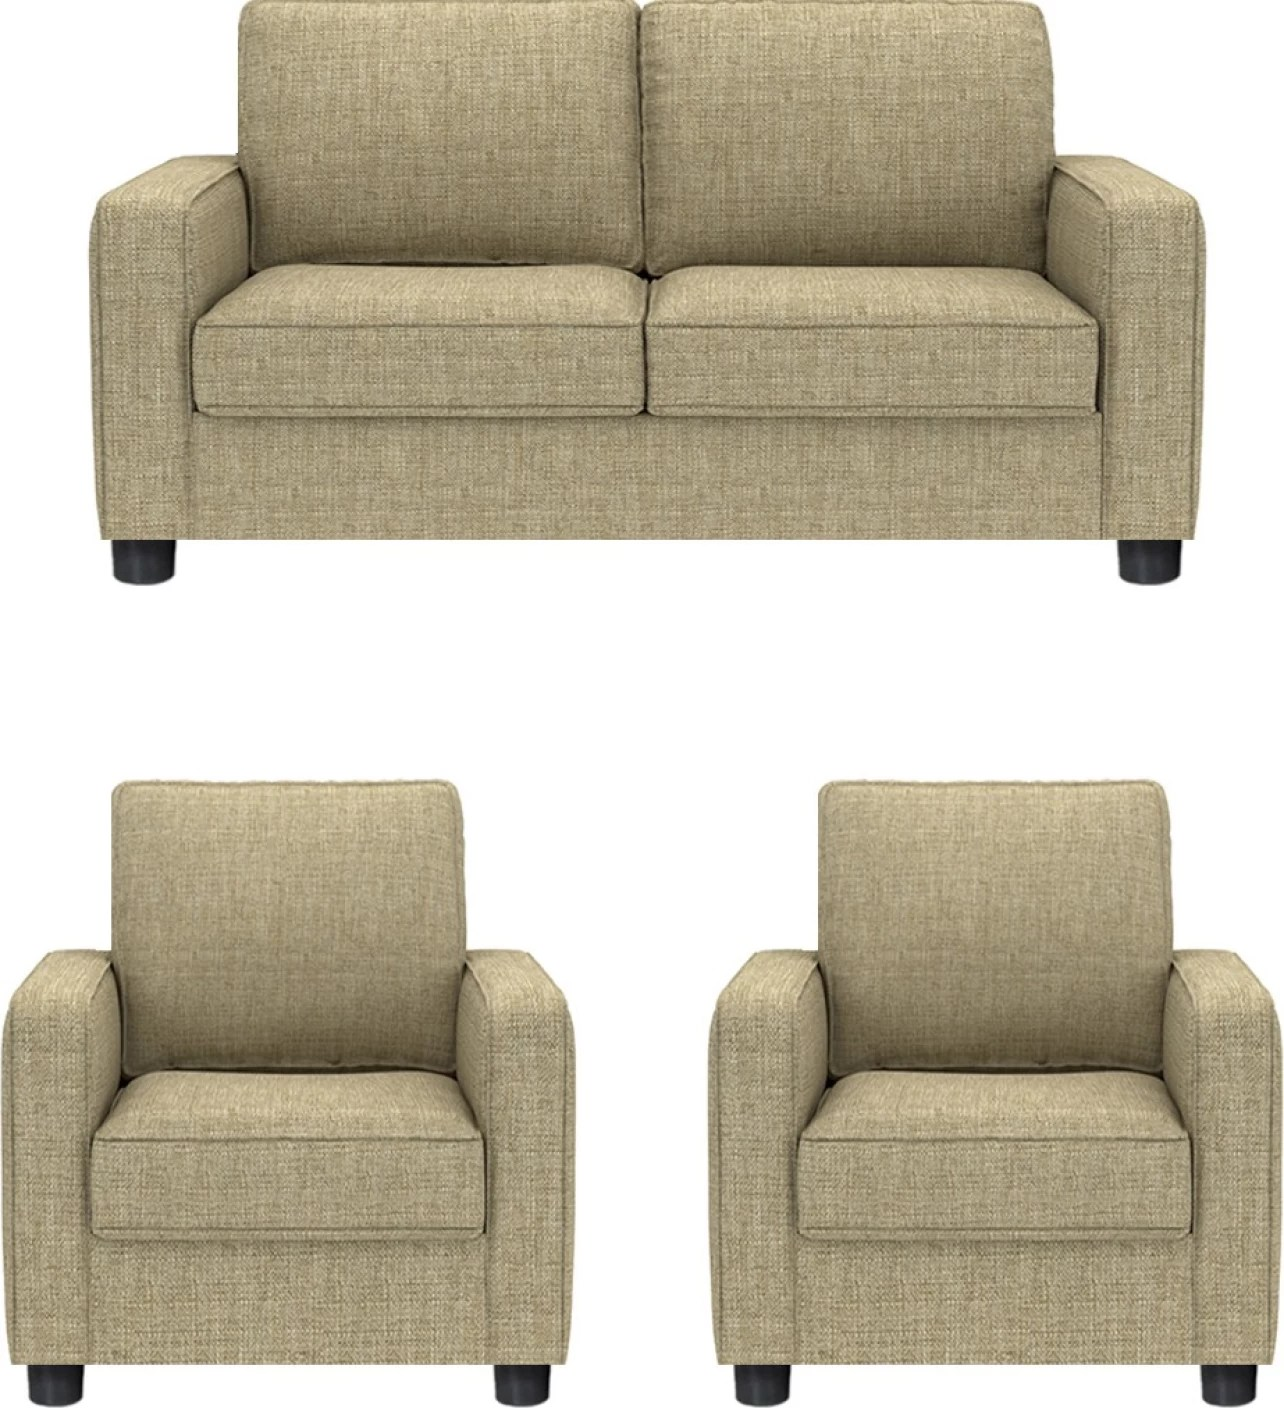 stanley sofa cost india center table gioteak fabric 2 43 1 beige set price in